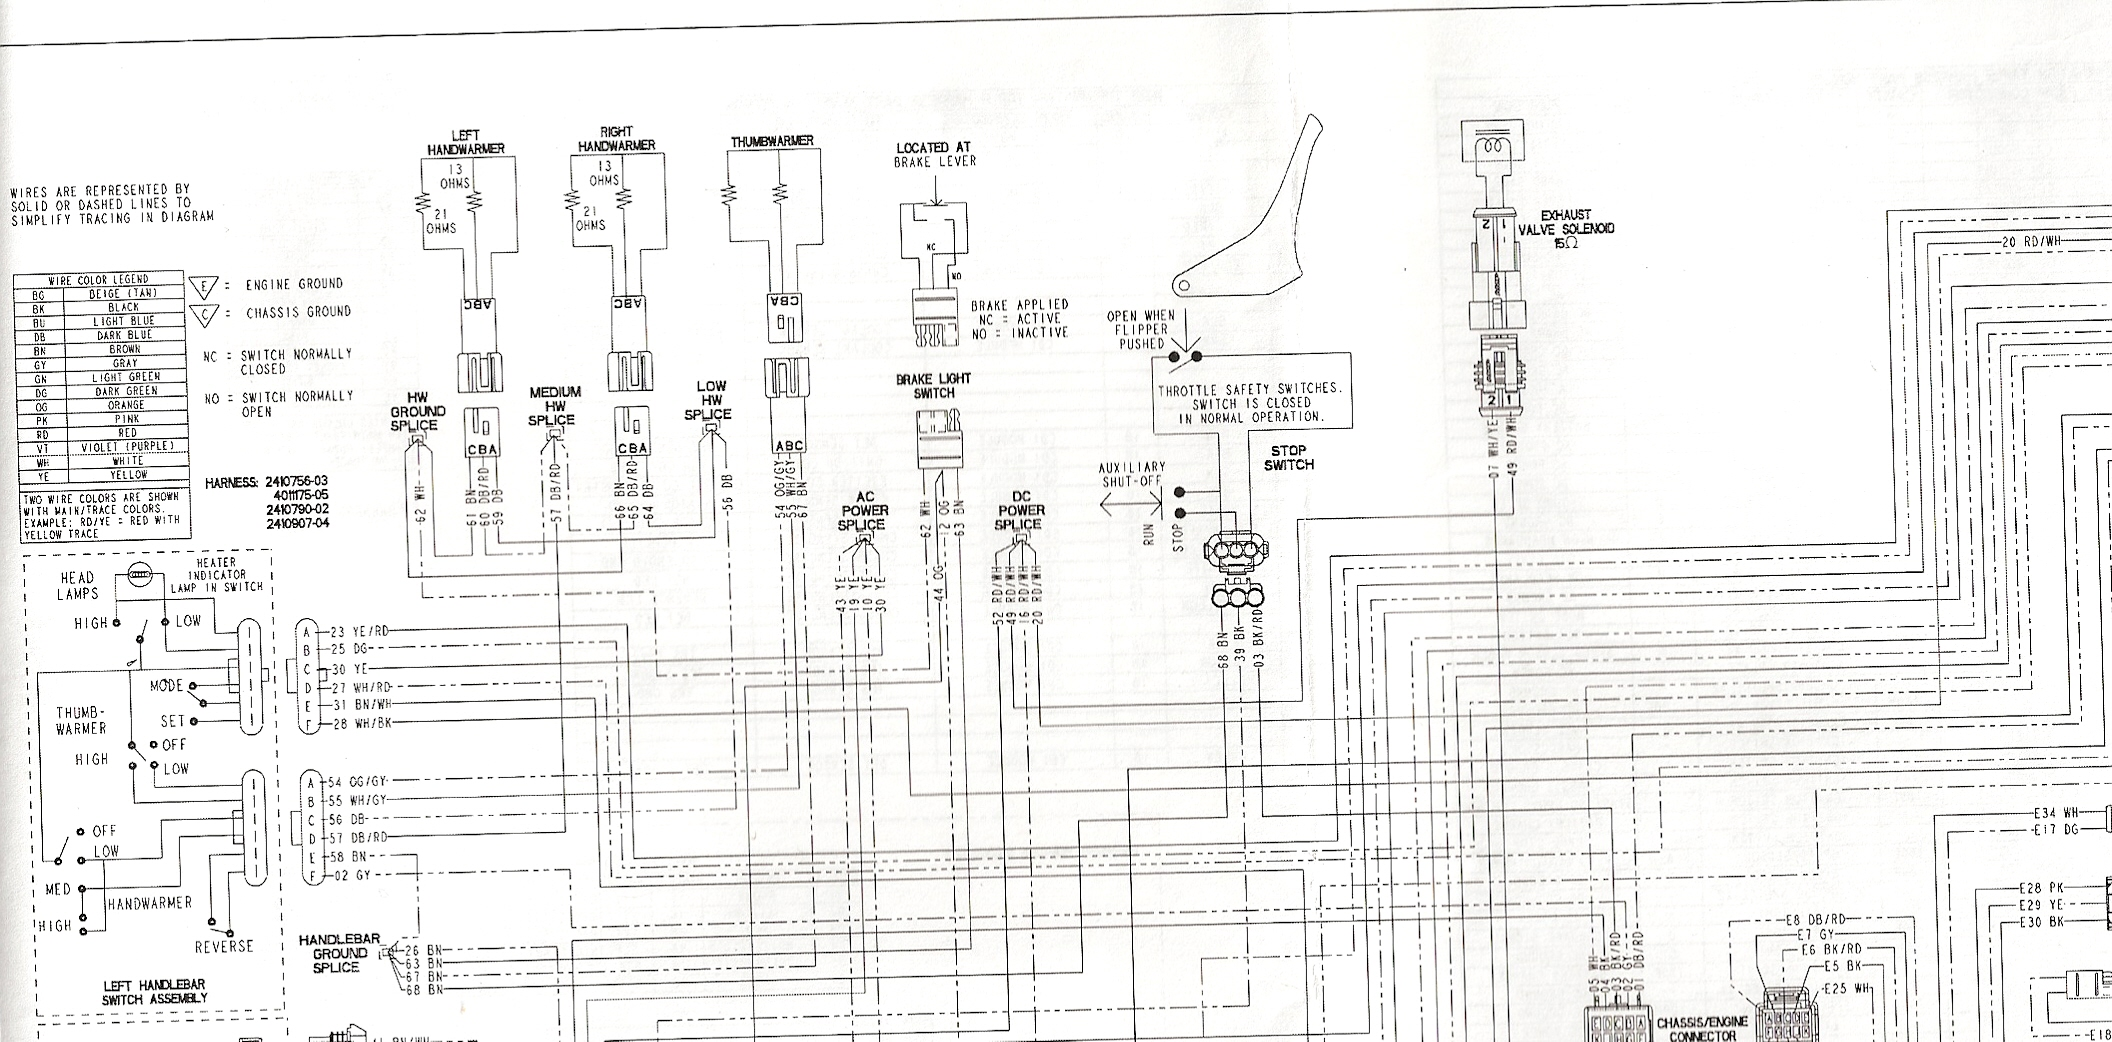 2011 Polaris Ranger 500 Wiring Diagram Rear Engine Diagram Rccar Wiring Yenpancane Jeanjaures37 Fr